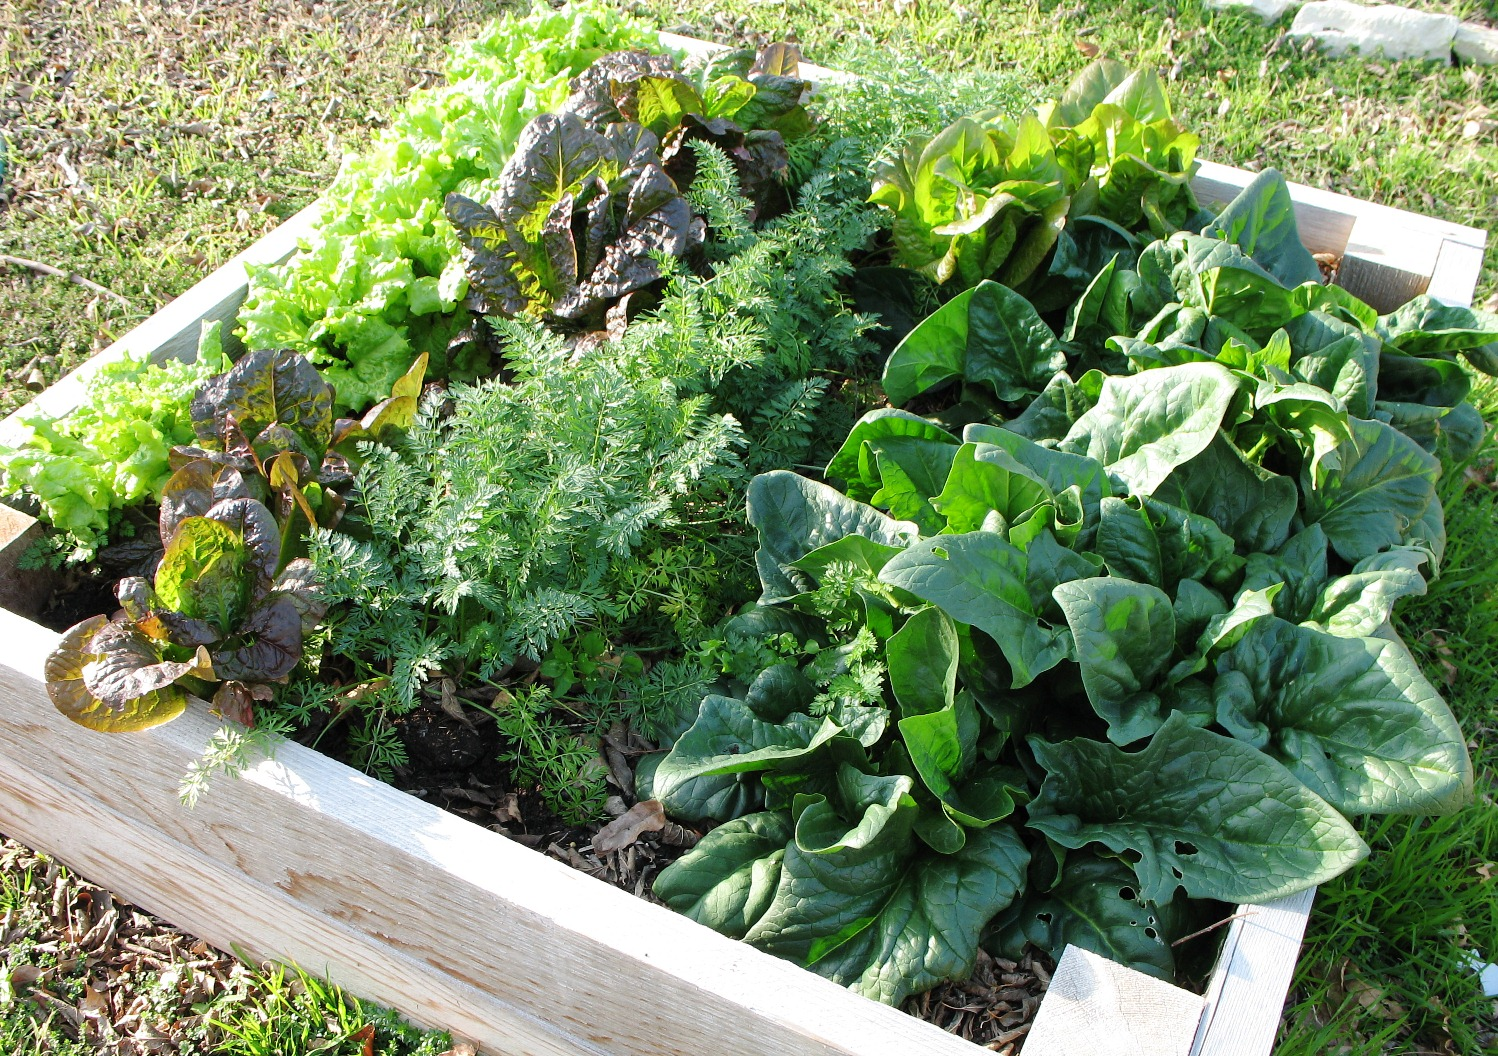 15 Ideal Vegetables That Grow Well In A Pot Or Container – The Self on easy permaculture ideas, easy travel ideas, easy composting ideas, easy landscaping ideas, easy diy ideas, easy topiary ideas, easy christmas ideas, easy spring ideas, easy container plant ideas, easy entertaining ideas, easy container flower gardening, easy food ideas, easy garden, easy woodworking ideas, easy fall ideas, easy flower gardening ideas, flowers for flower pots ideas, easy sewing ideas, easy recycling ideas, easy xeriscaping ideas,